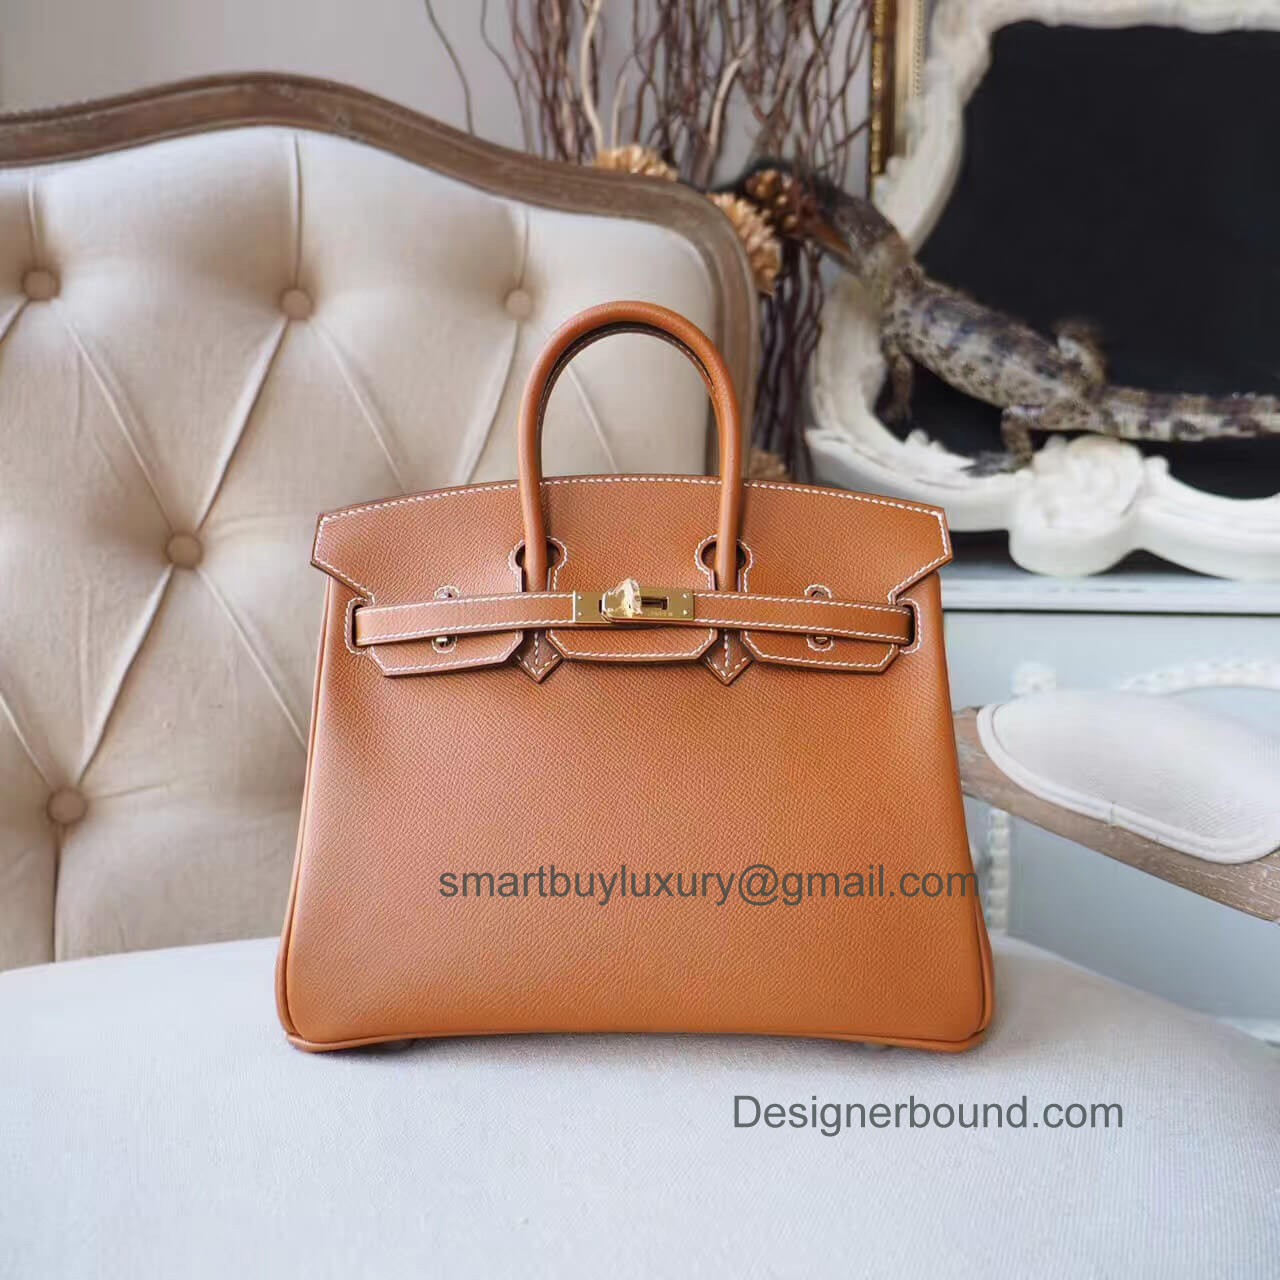 Hermes Birkin 25 Bag in ck27 Gold Epsom GHW